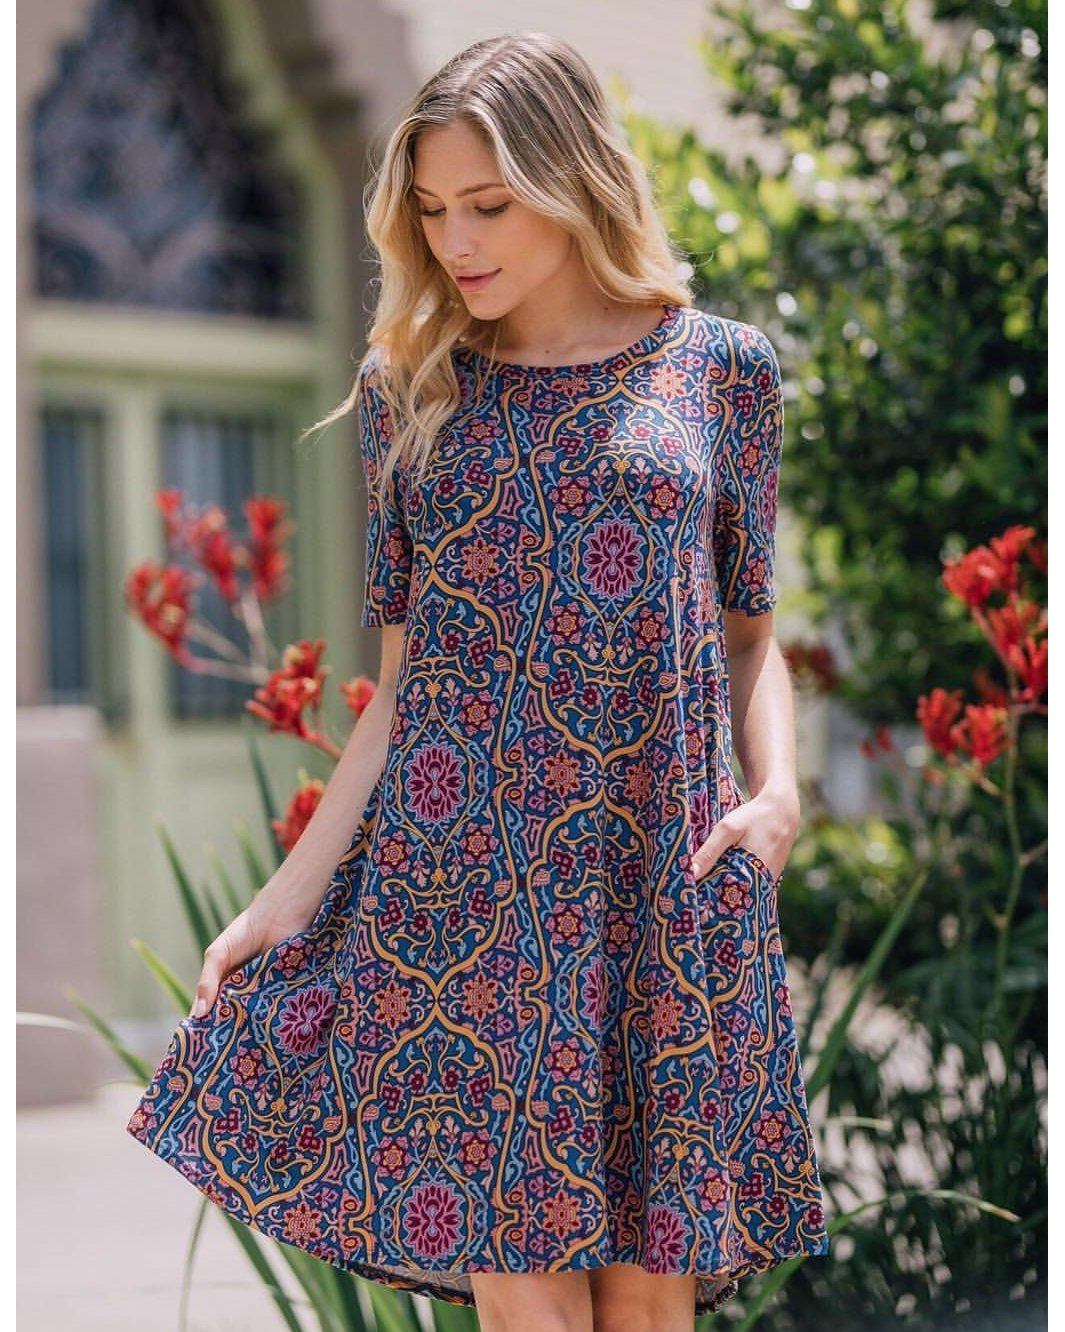 All Things Colorful Short Sleeve Print Swing Dress with Pockets - Essentially Elegant